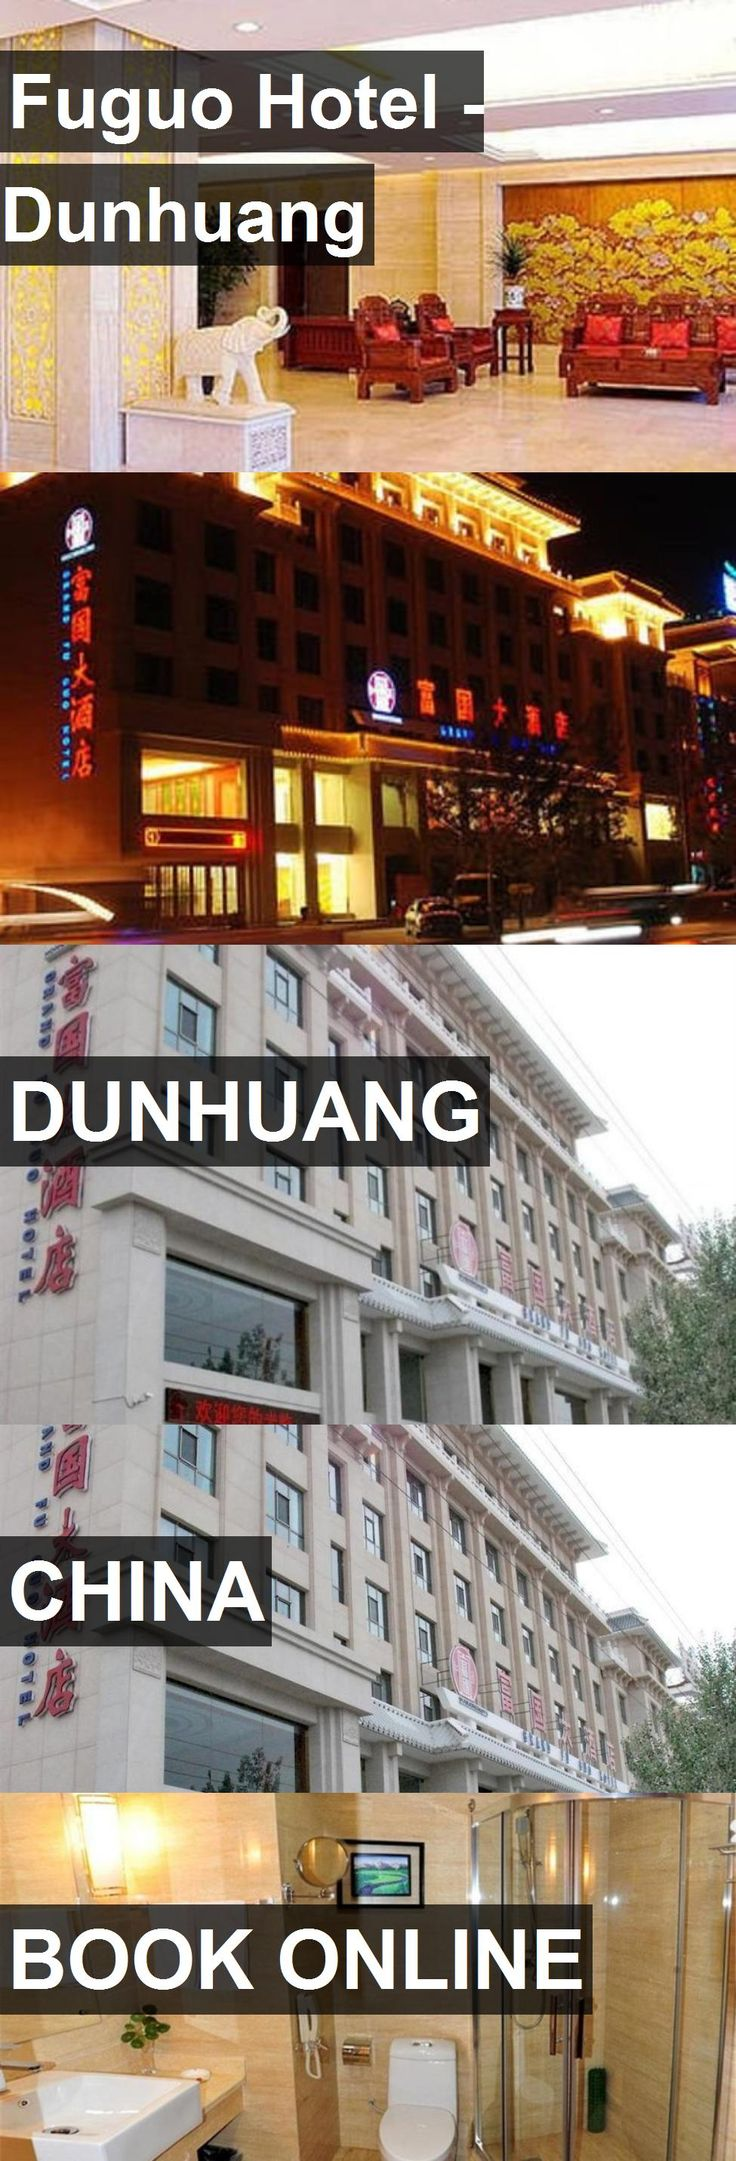 Hotel Fuguo Hotel - Dunhuang in Dunhuang, China. For more information, photos, reviews and best prices please follow the link. #China #Dunhuang #FuguoHotel-Dunhuang #hotel #travel #vacation